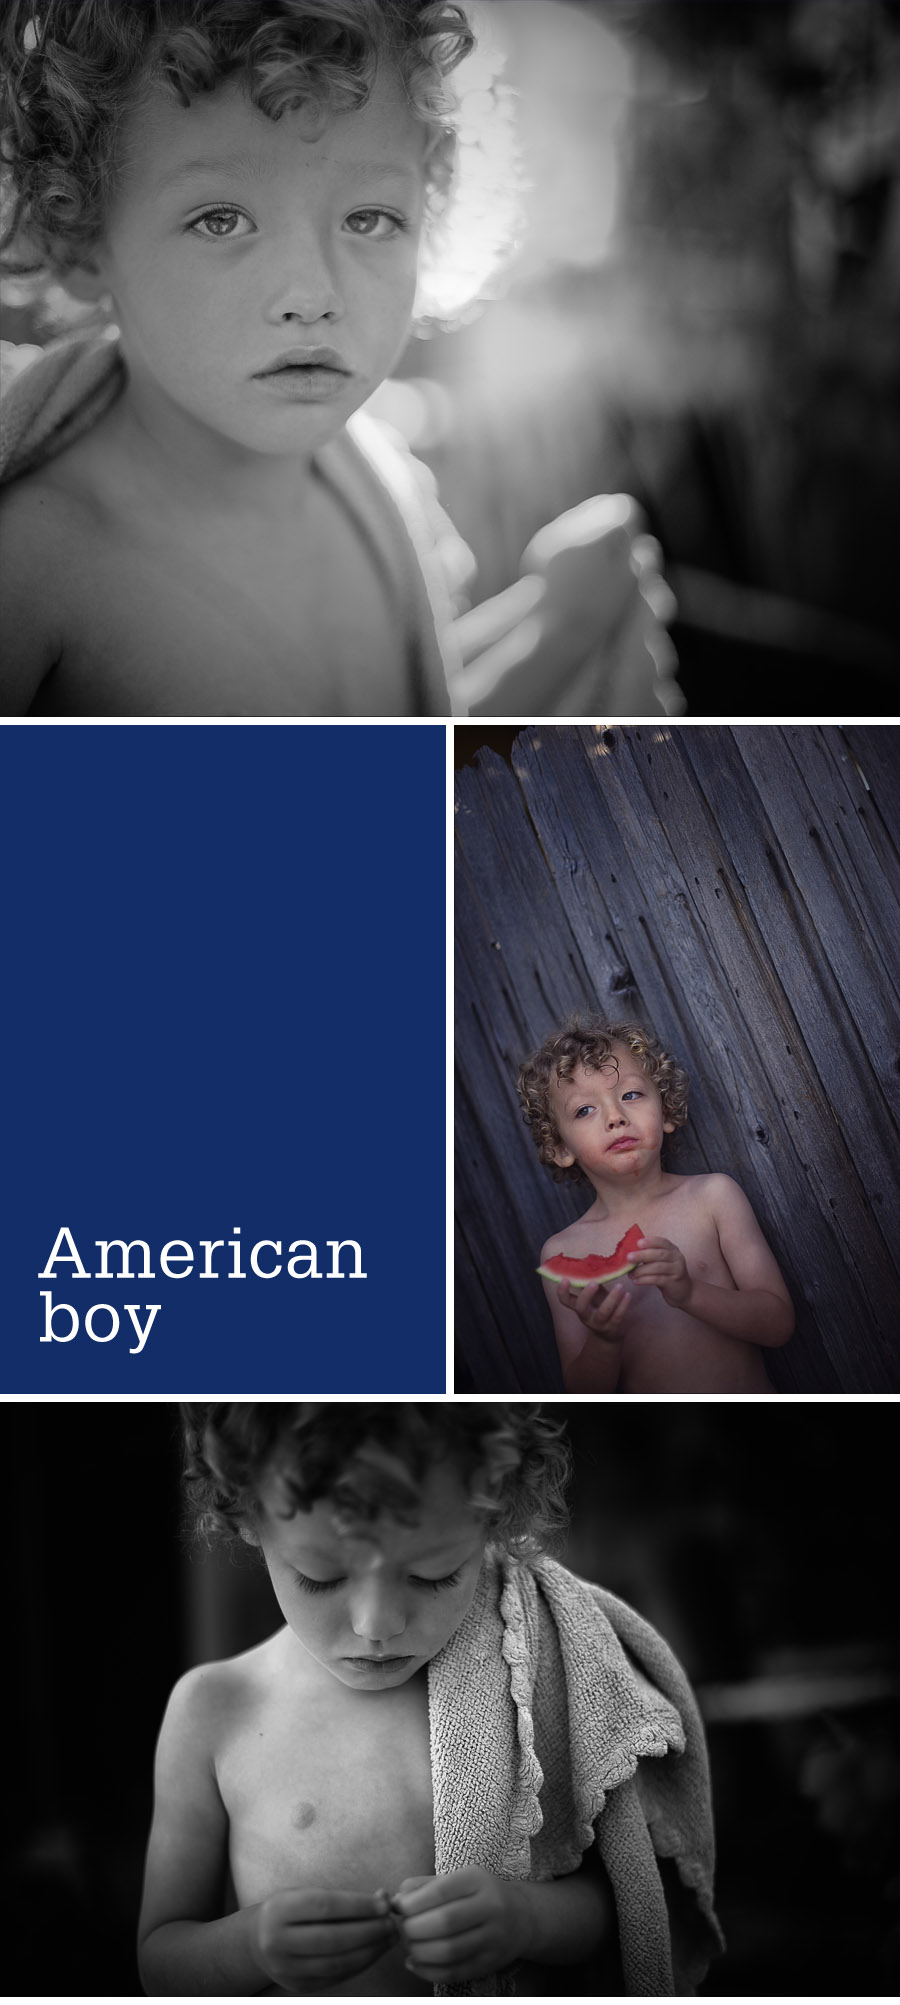 portraits of an American boy - kids' candid photography by Gillian Crane, Orange County photographer